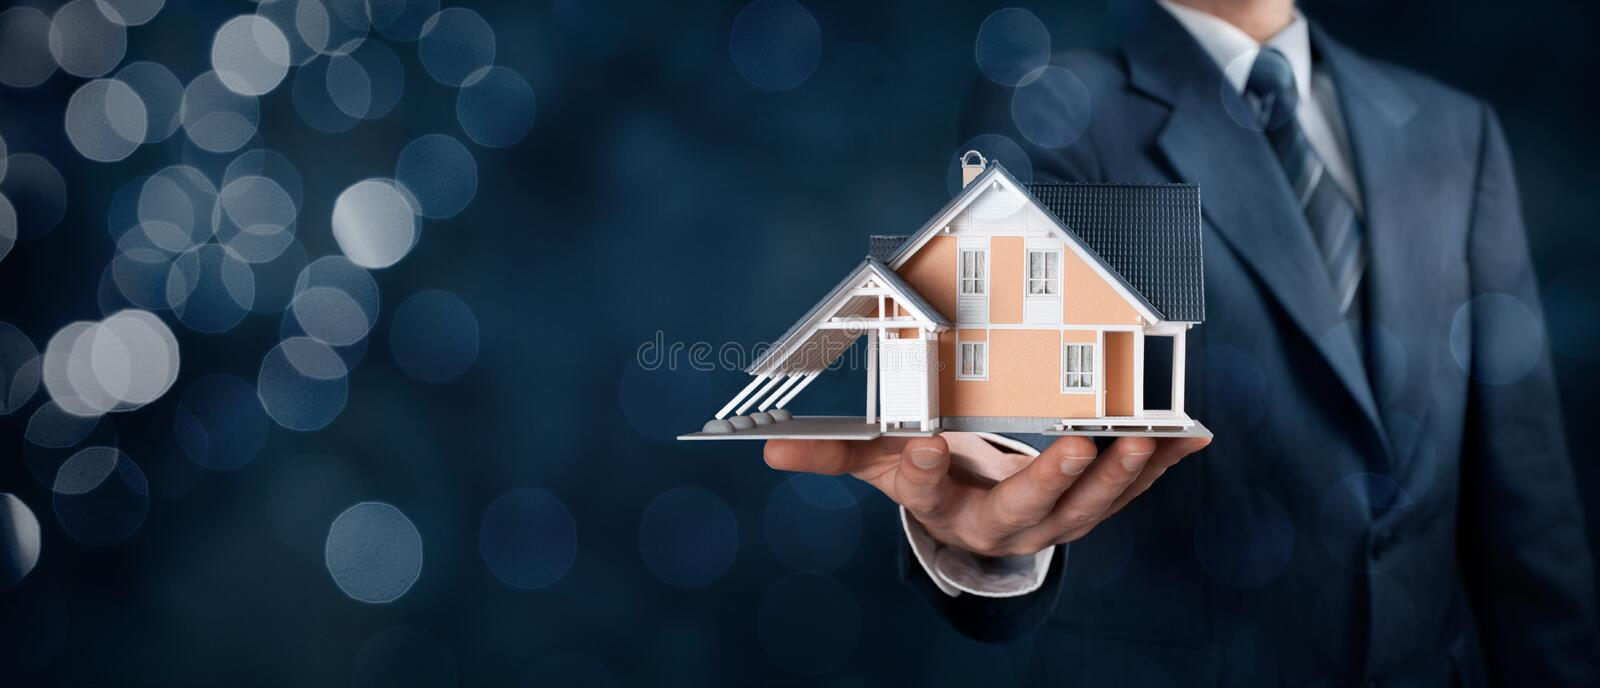 Real estate agent. Offer house represented by model. Wide banner composition with bokeh background royalty free stock photos